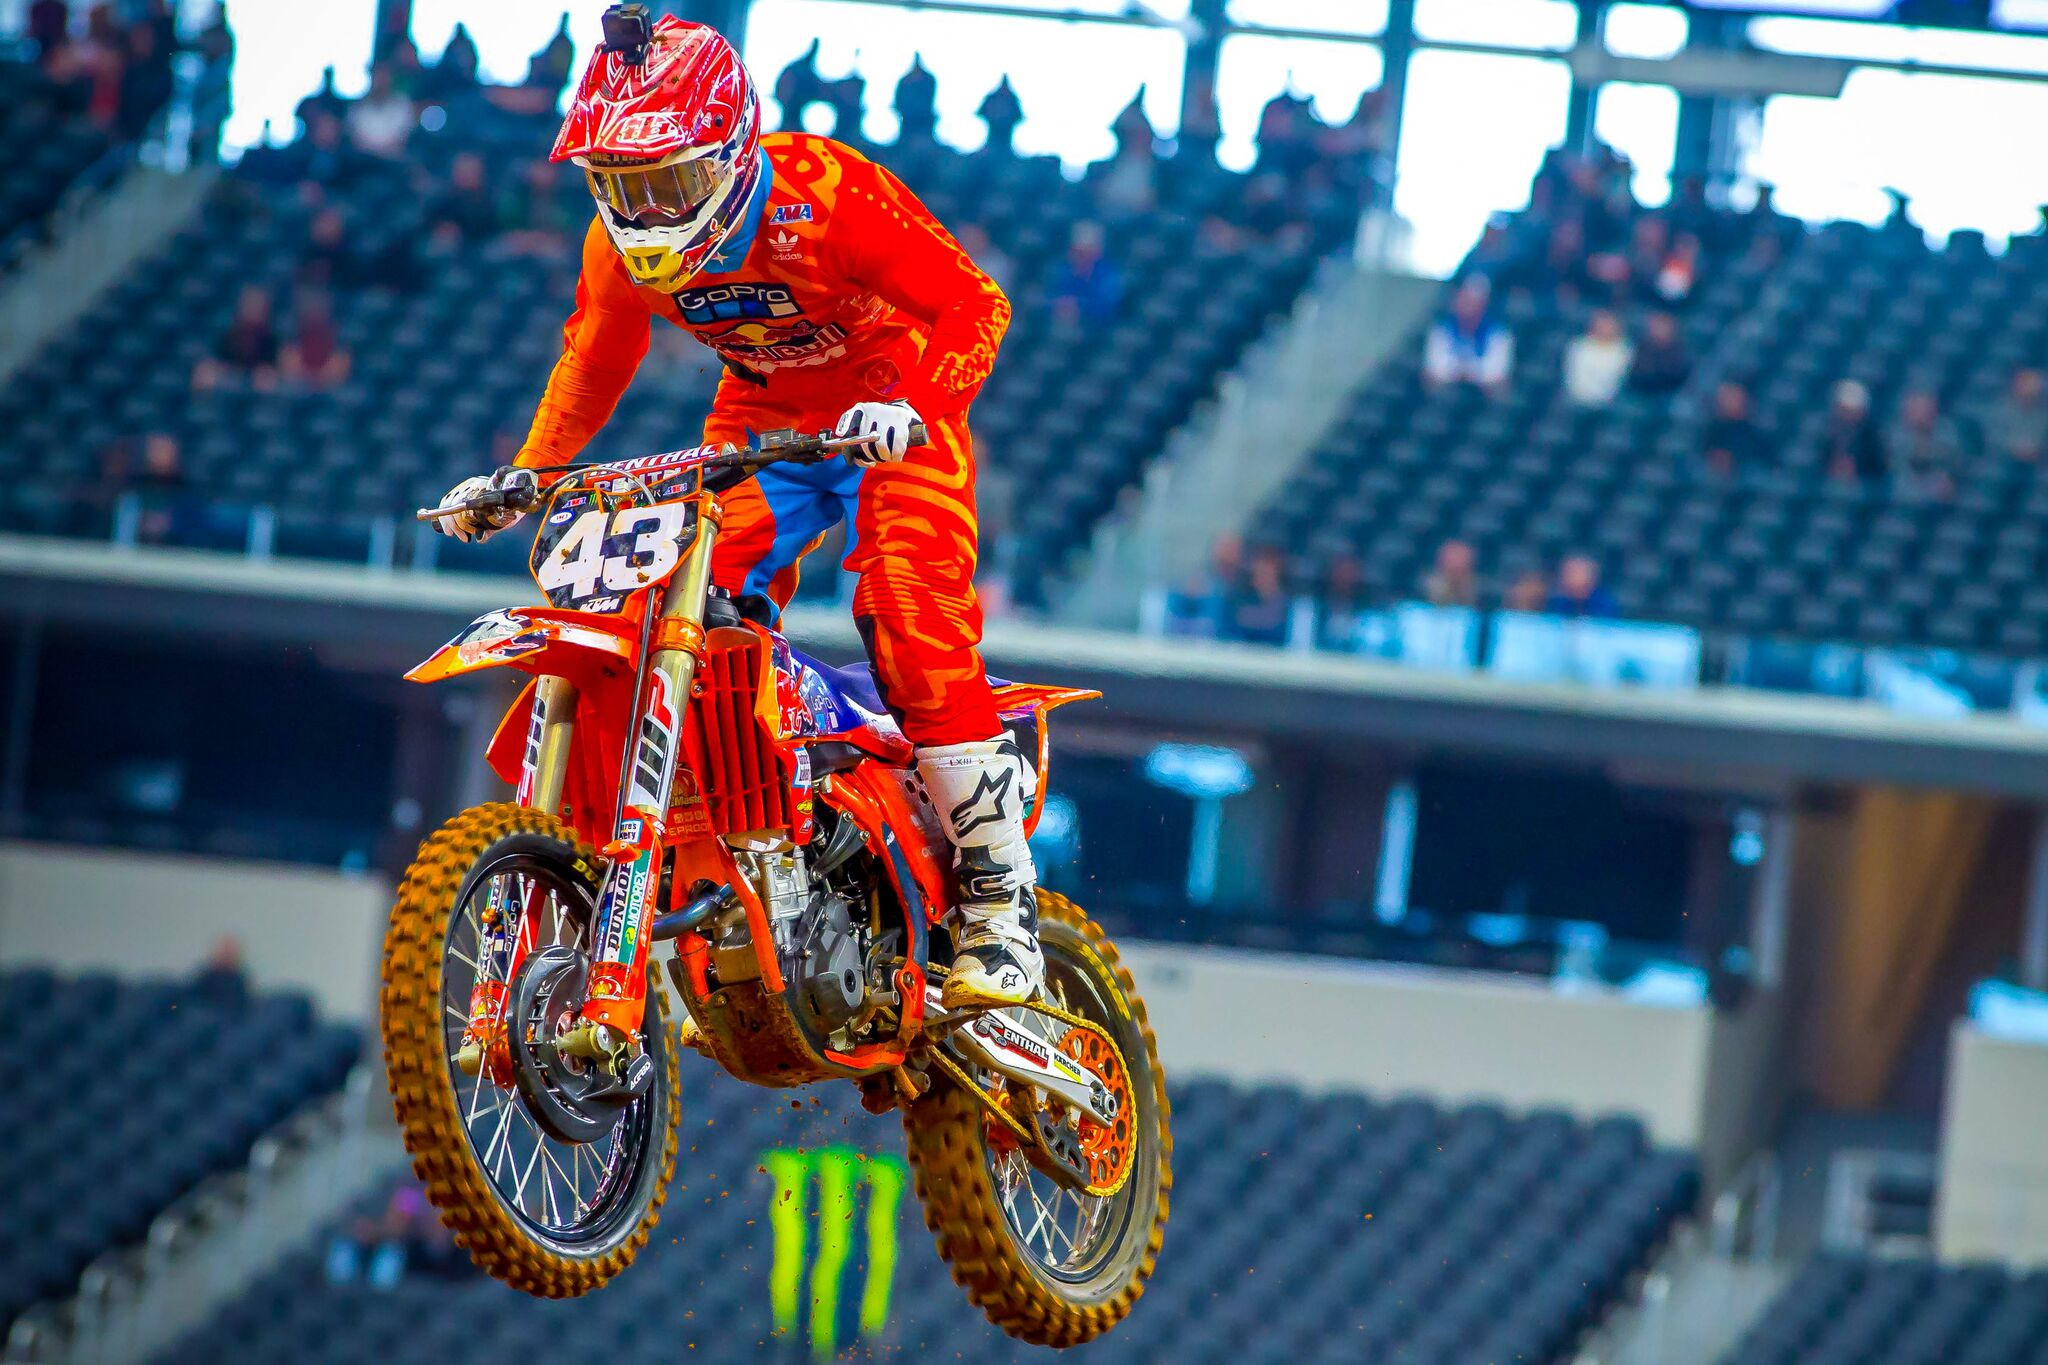 Troy Lee Designs/Red Bull/KTM's Smith and Cantrell Start Eastern Regional Championship with Top-10 Finishes